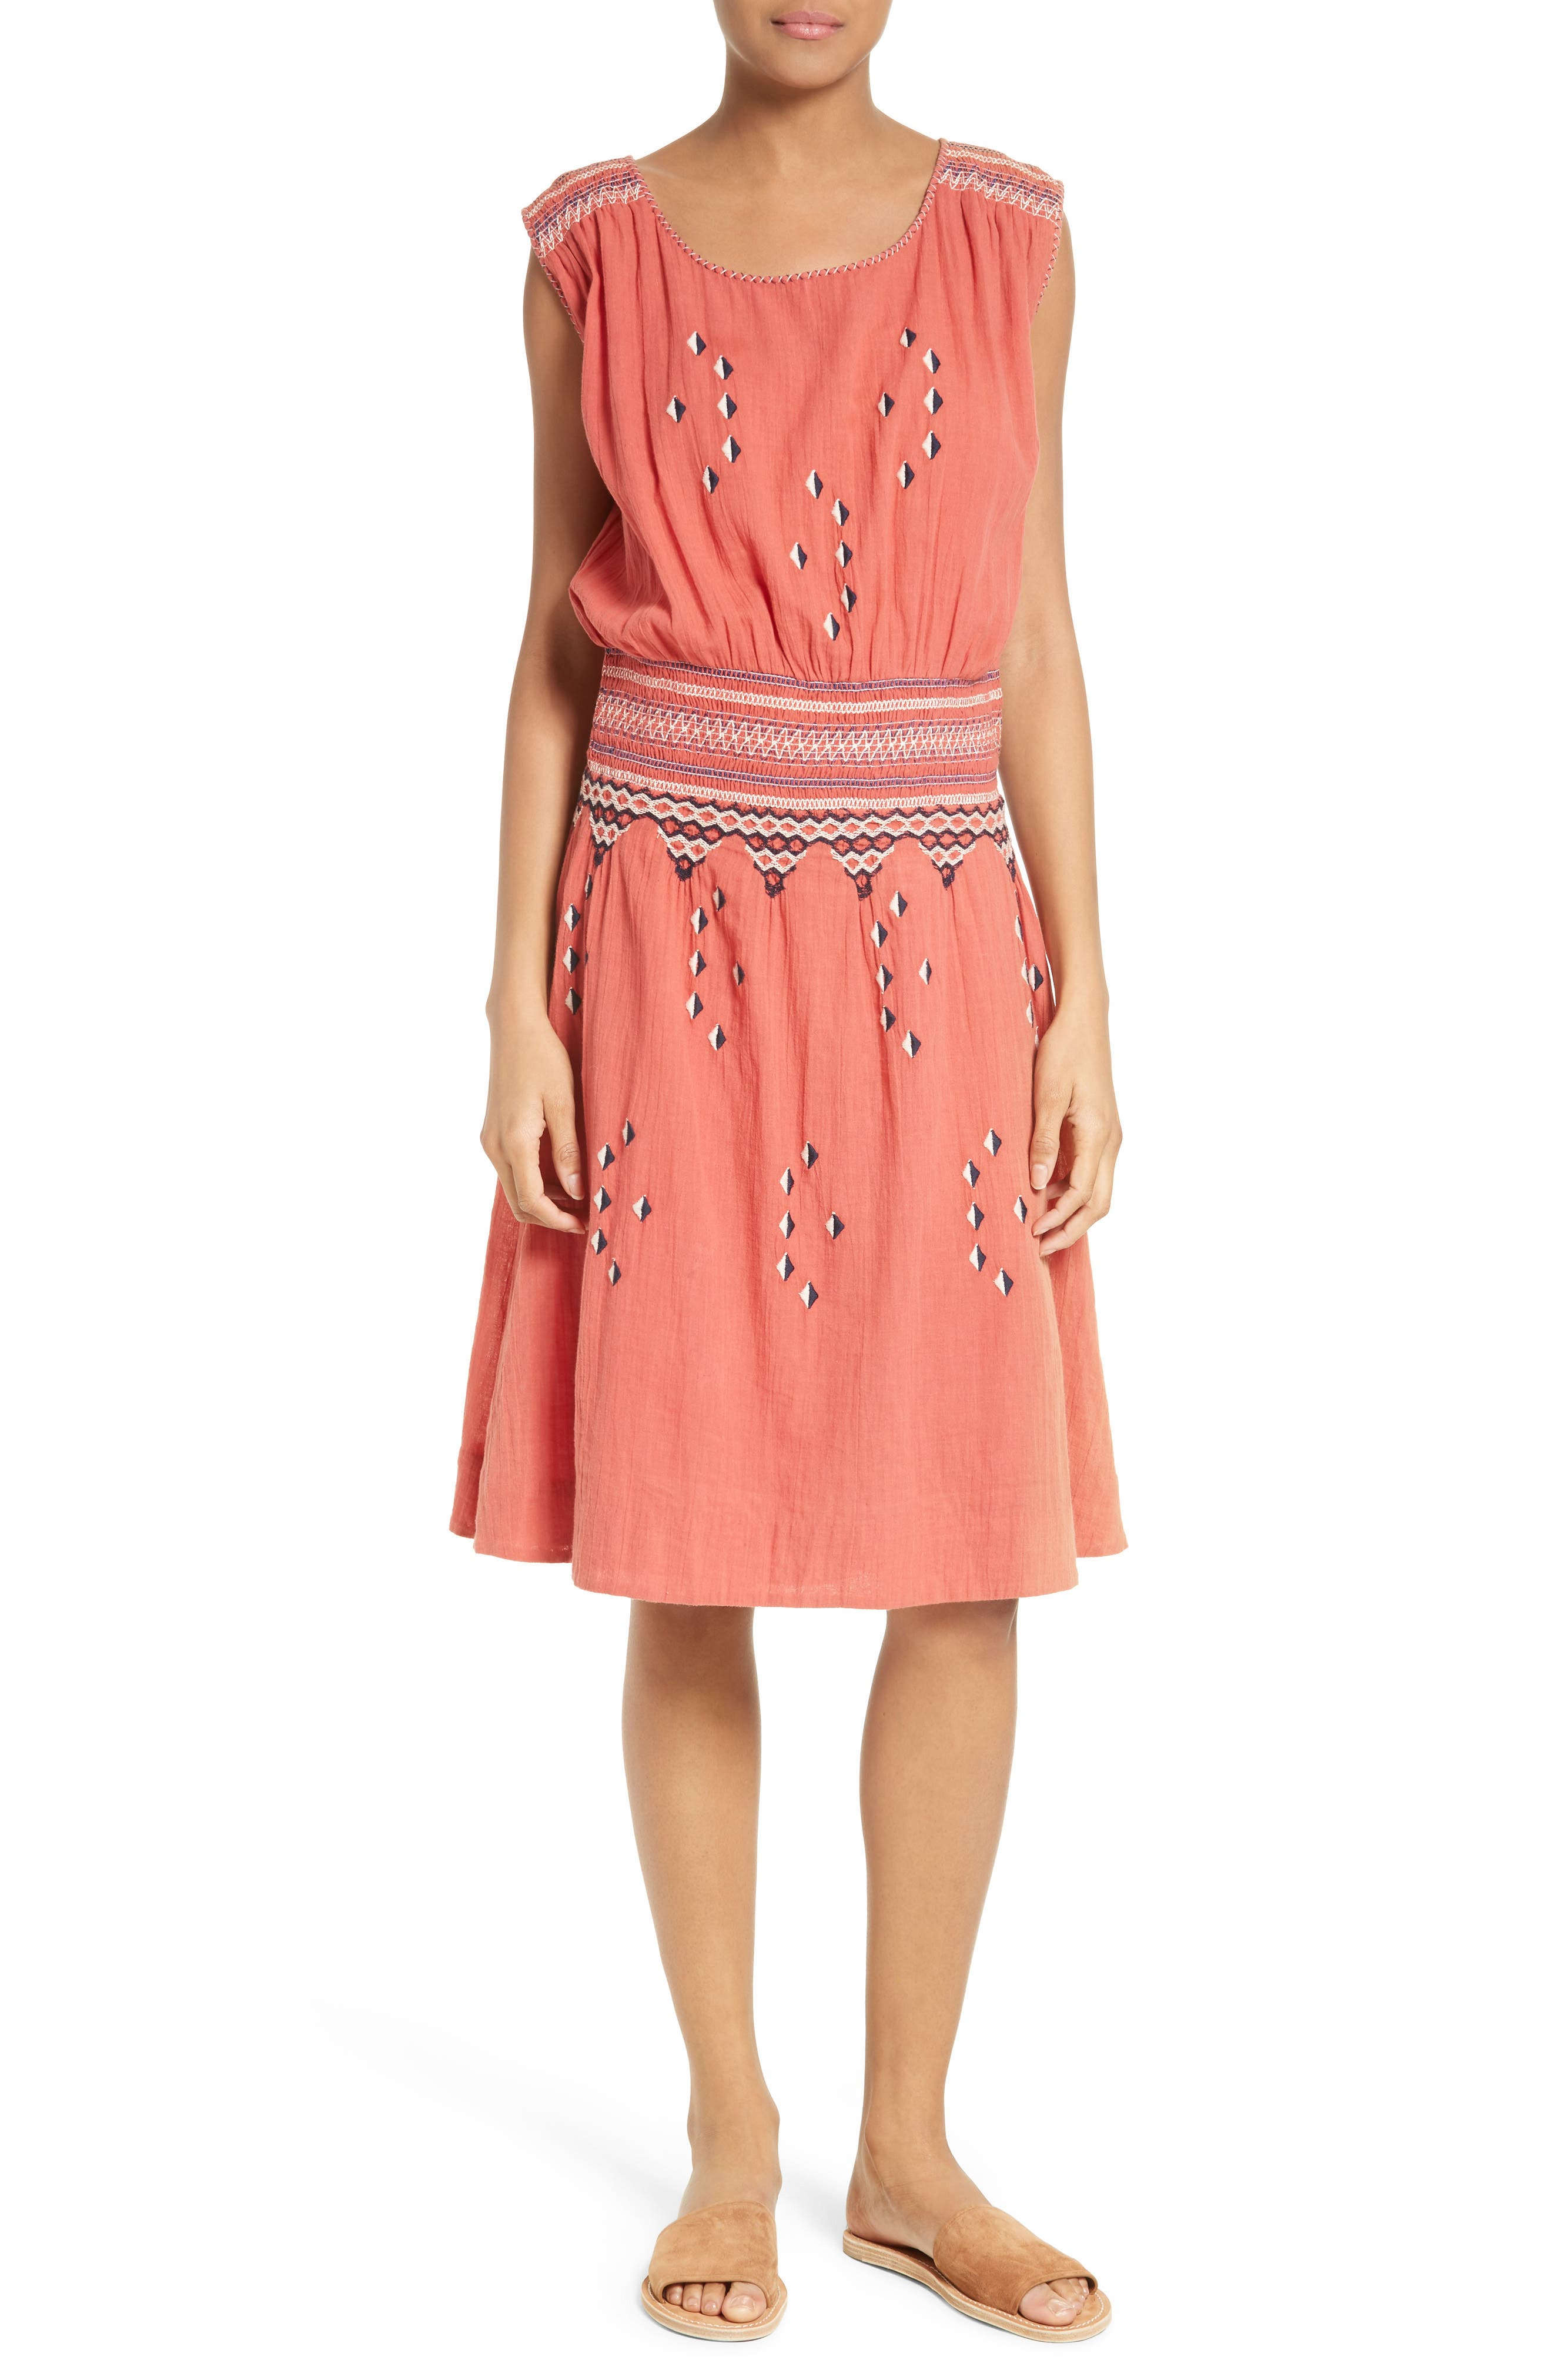 THE GREAT. The Deco Embroidered Dress